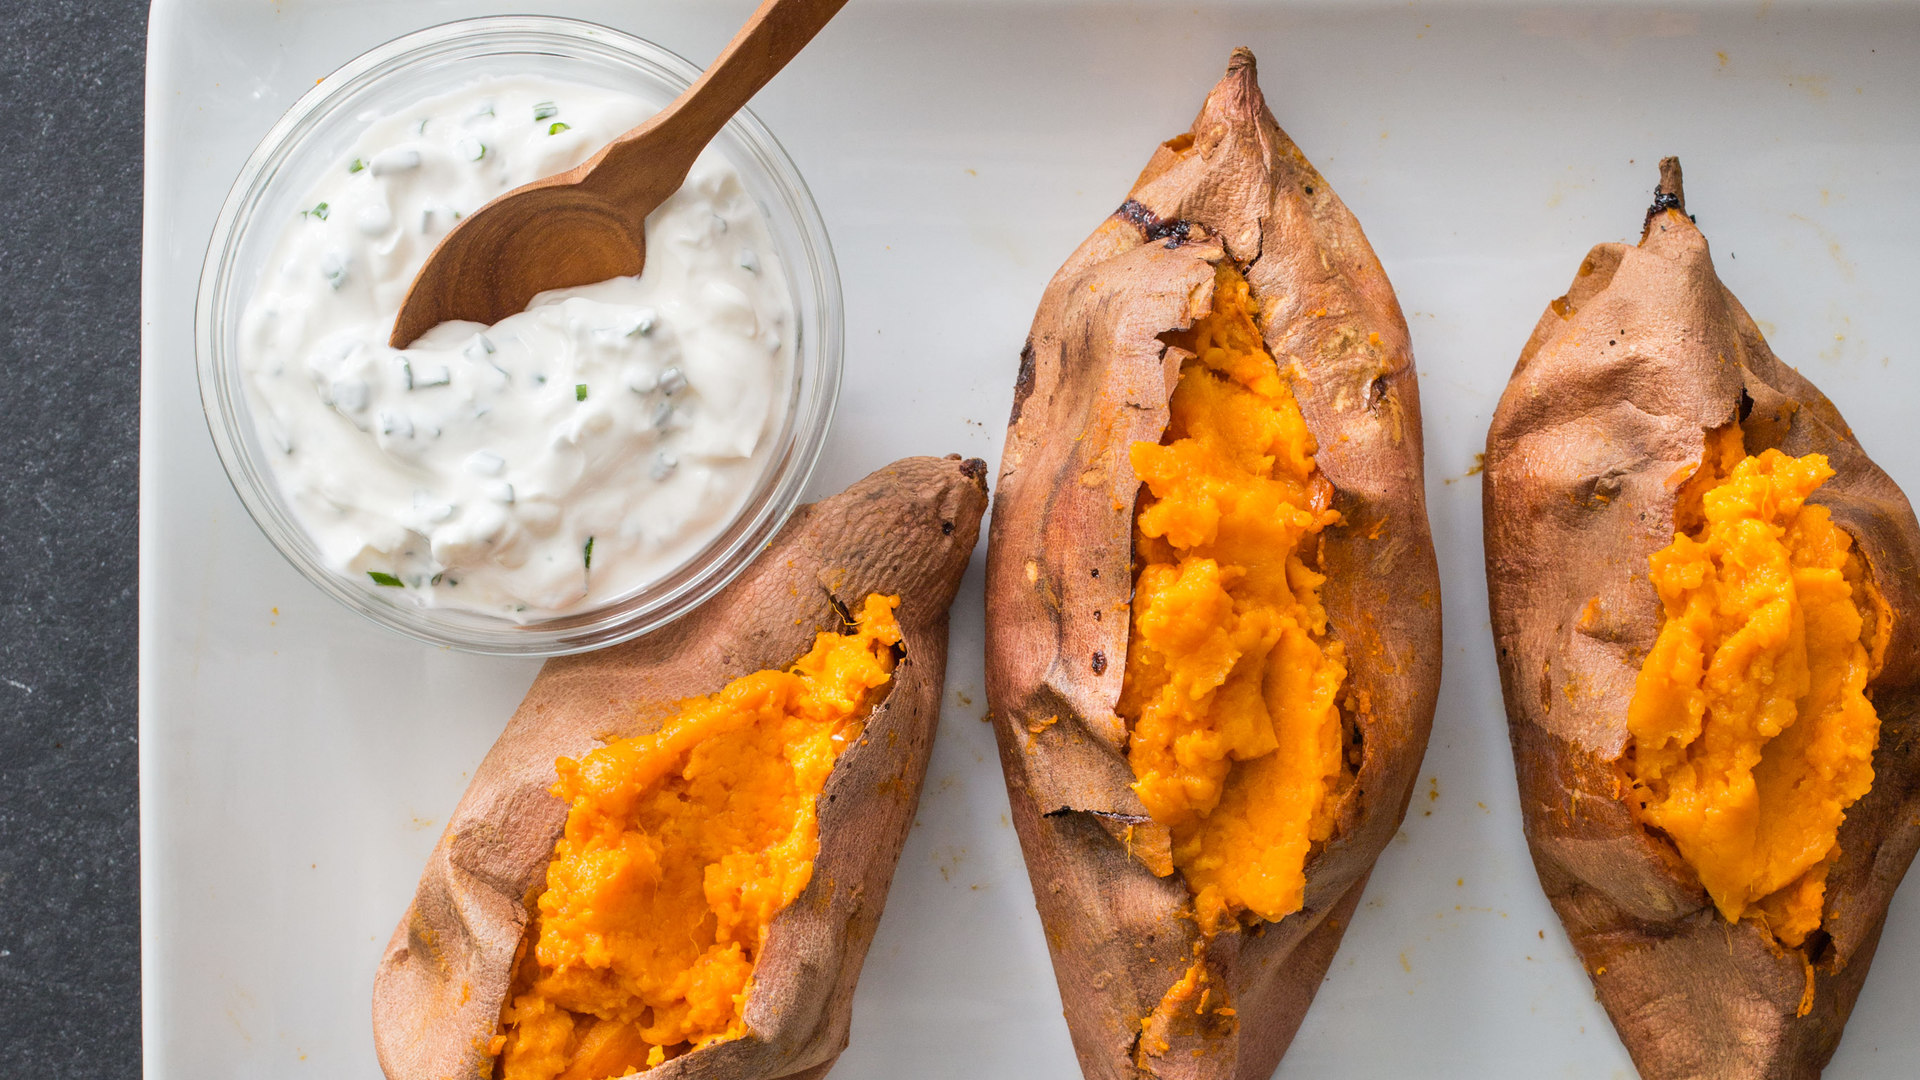 Baked sweet potato in microwave then oven